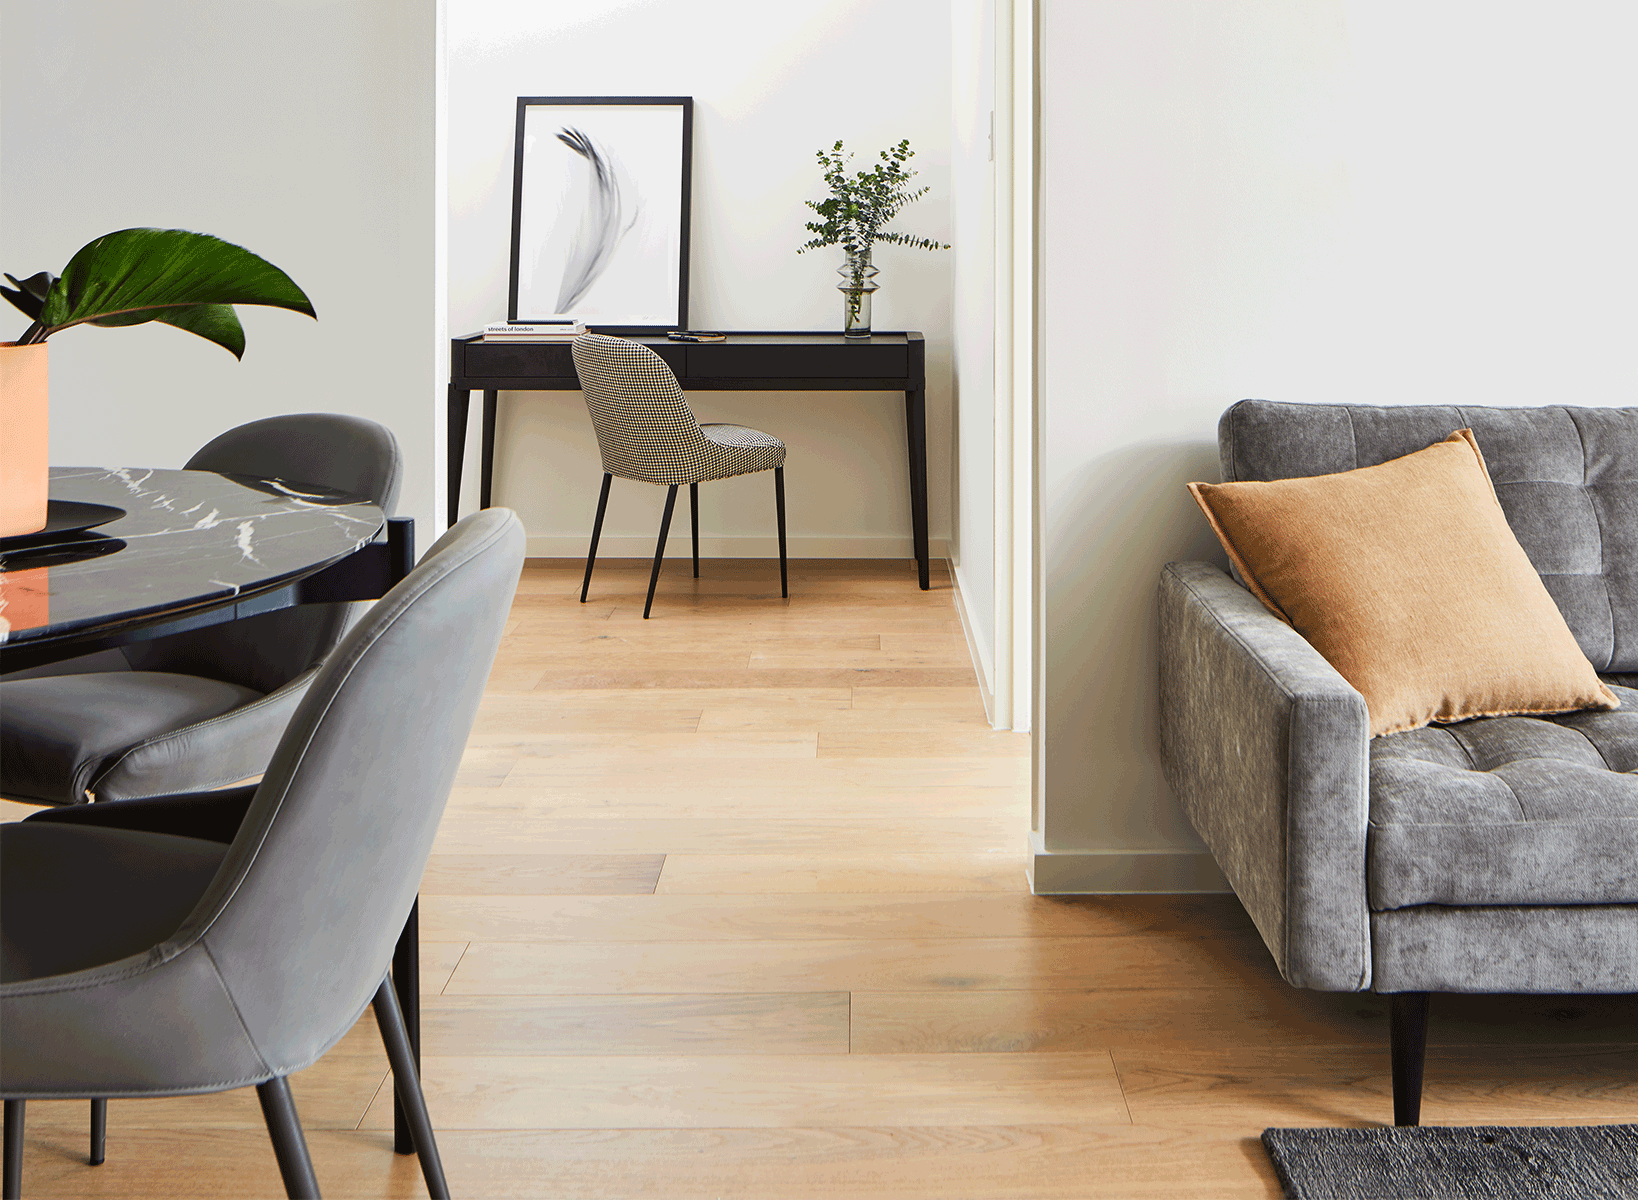 How to furnish small spaces